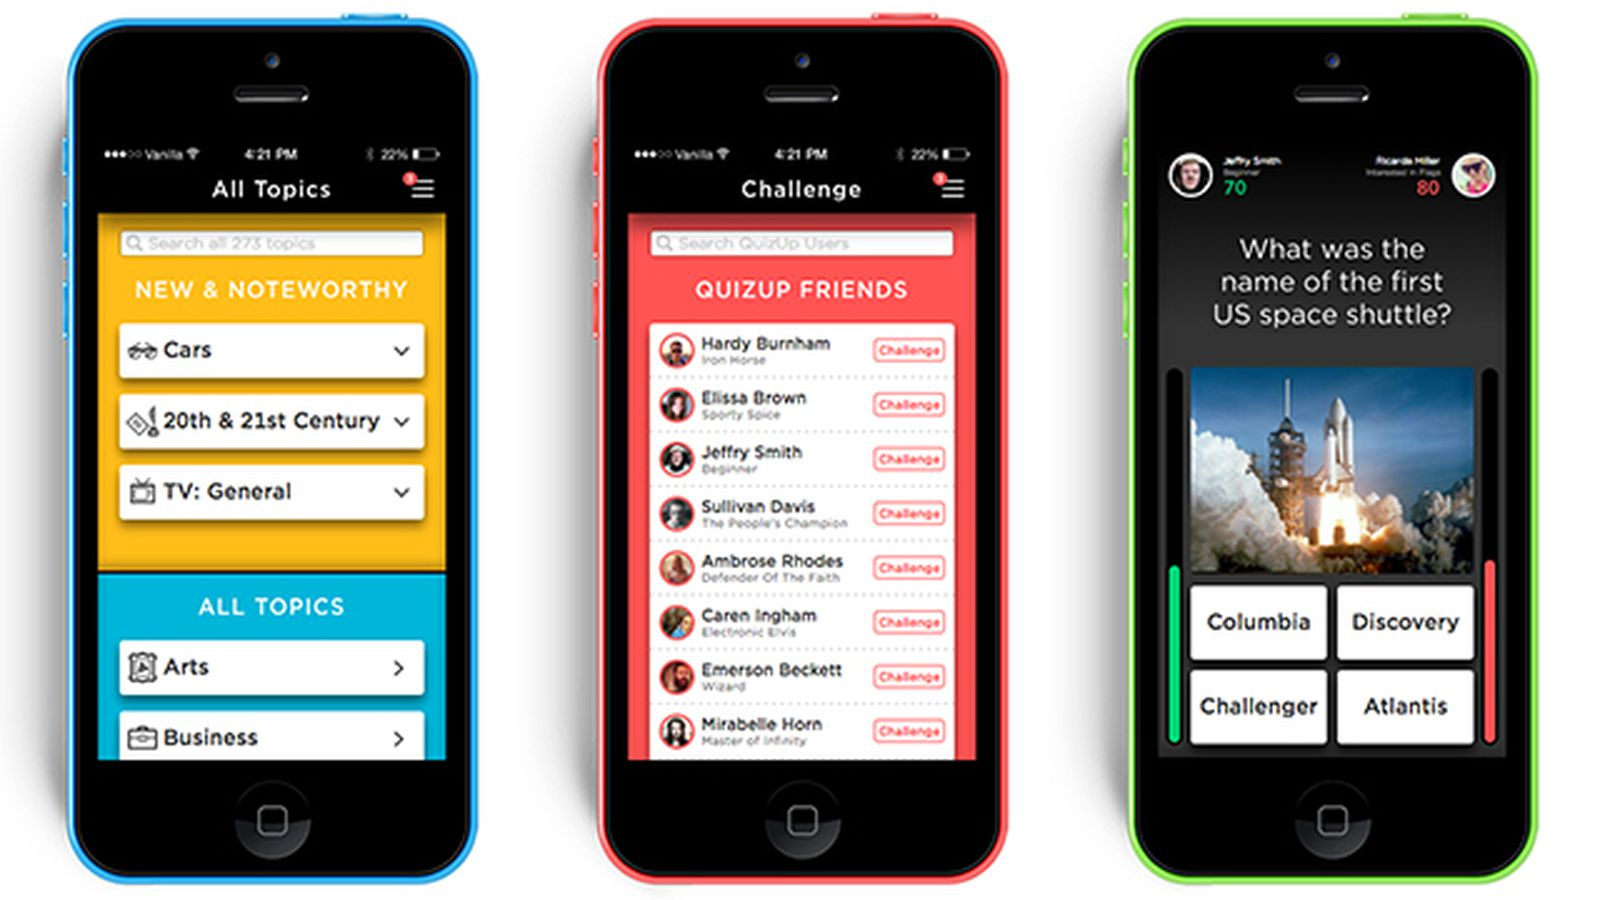 Popular Ios App Quizup Is Full Of Security Holes, Fix On The Way The Verge